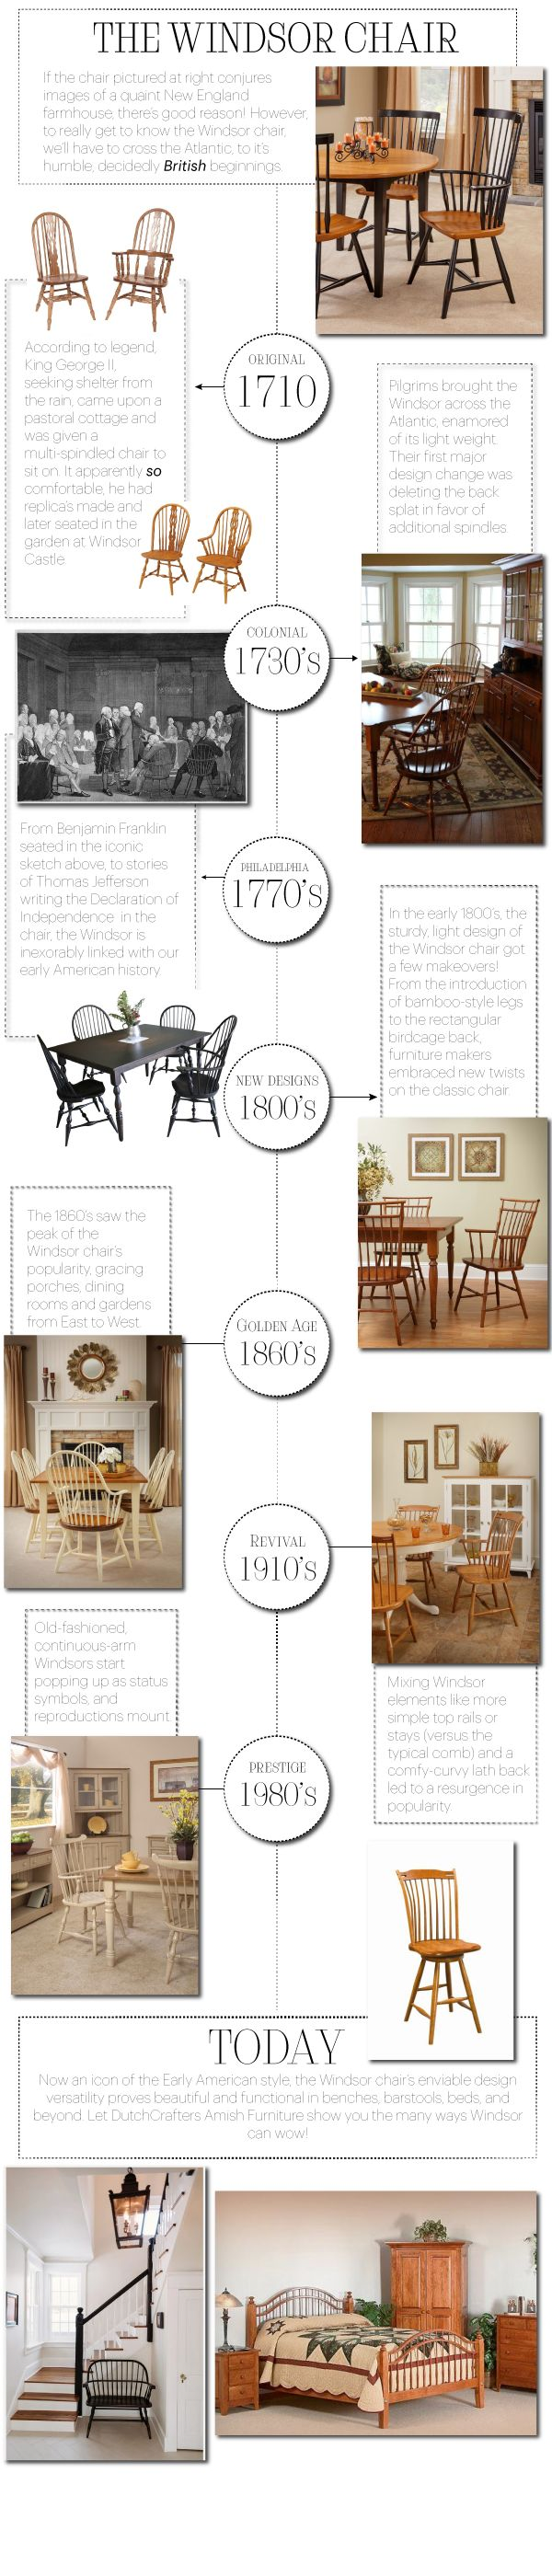 Amish furniture bristol pa - A Brief History Of The Windsor Chair Infographic Windsor Chairsamish